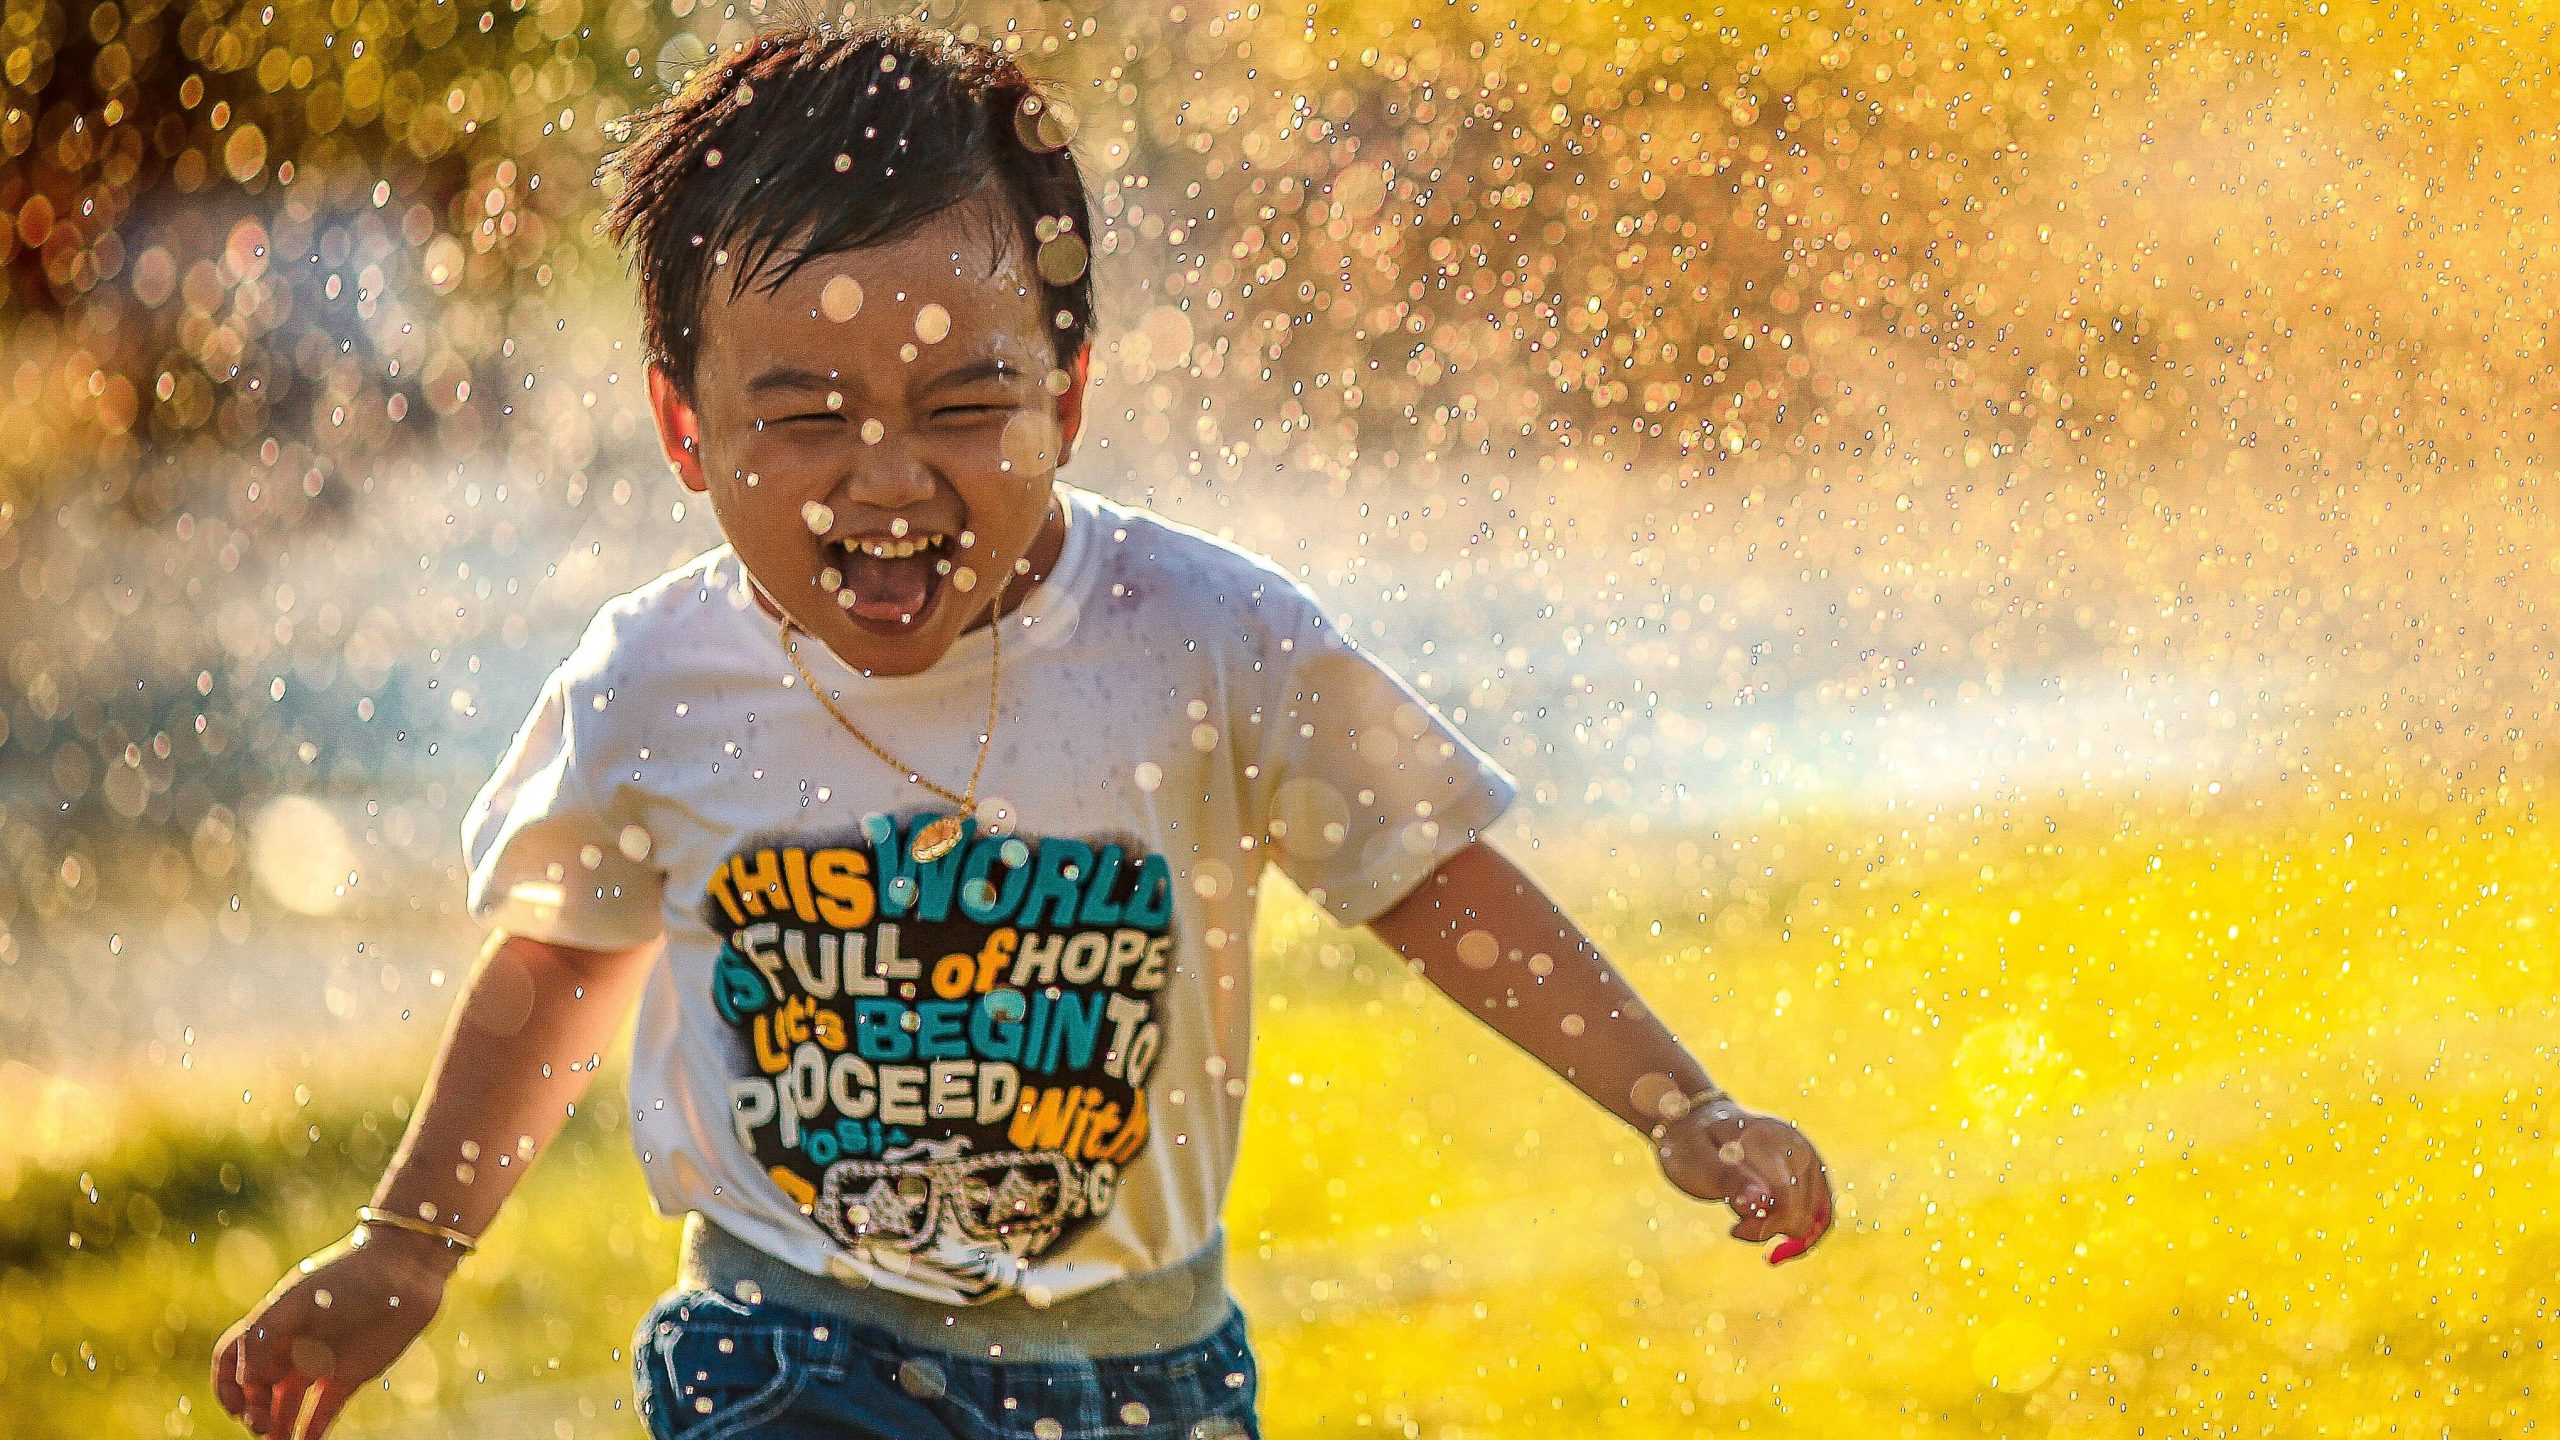 Image: kid smiling and running in sprinklers